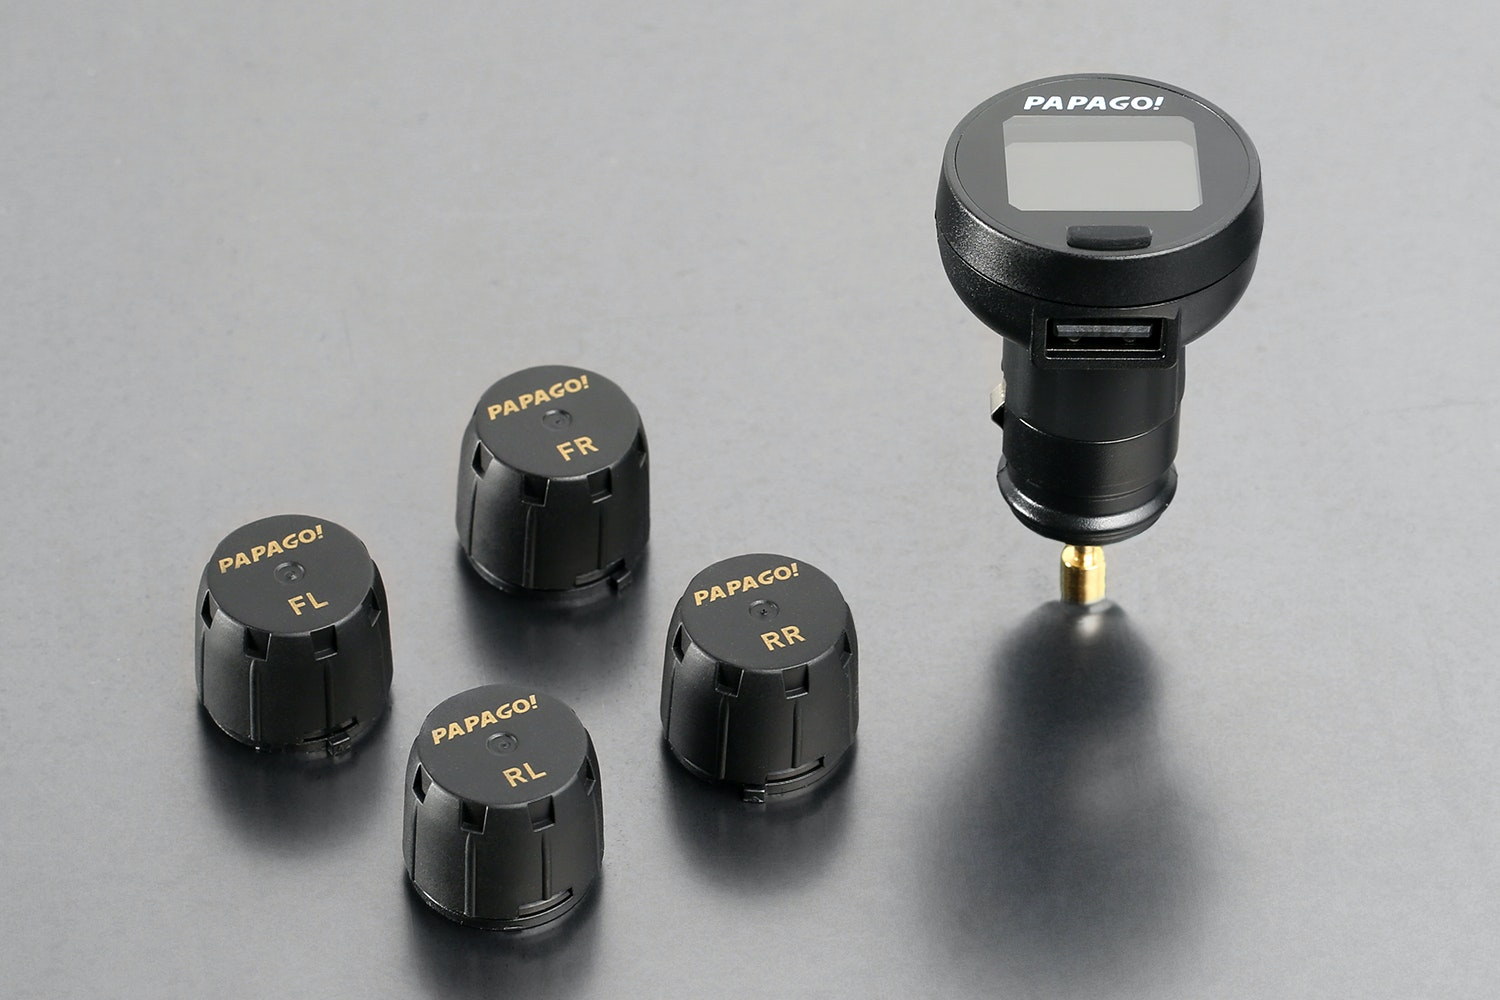 Papago Tire Pressure Monitoring System